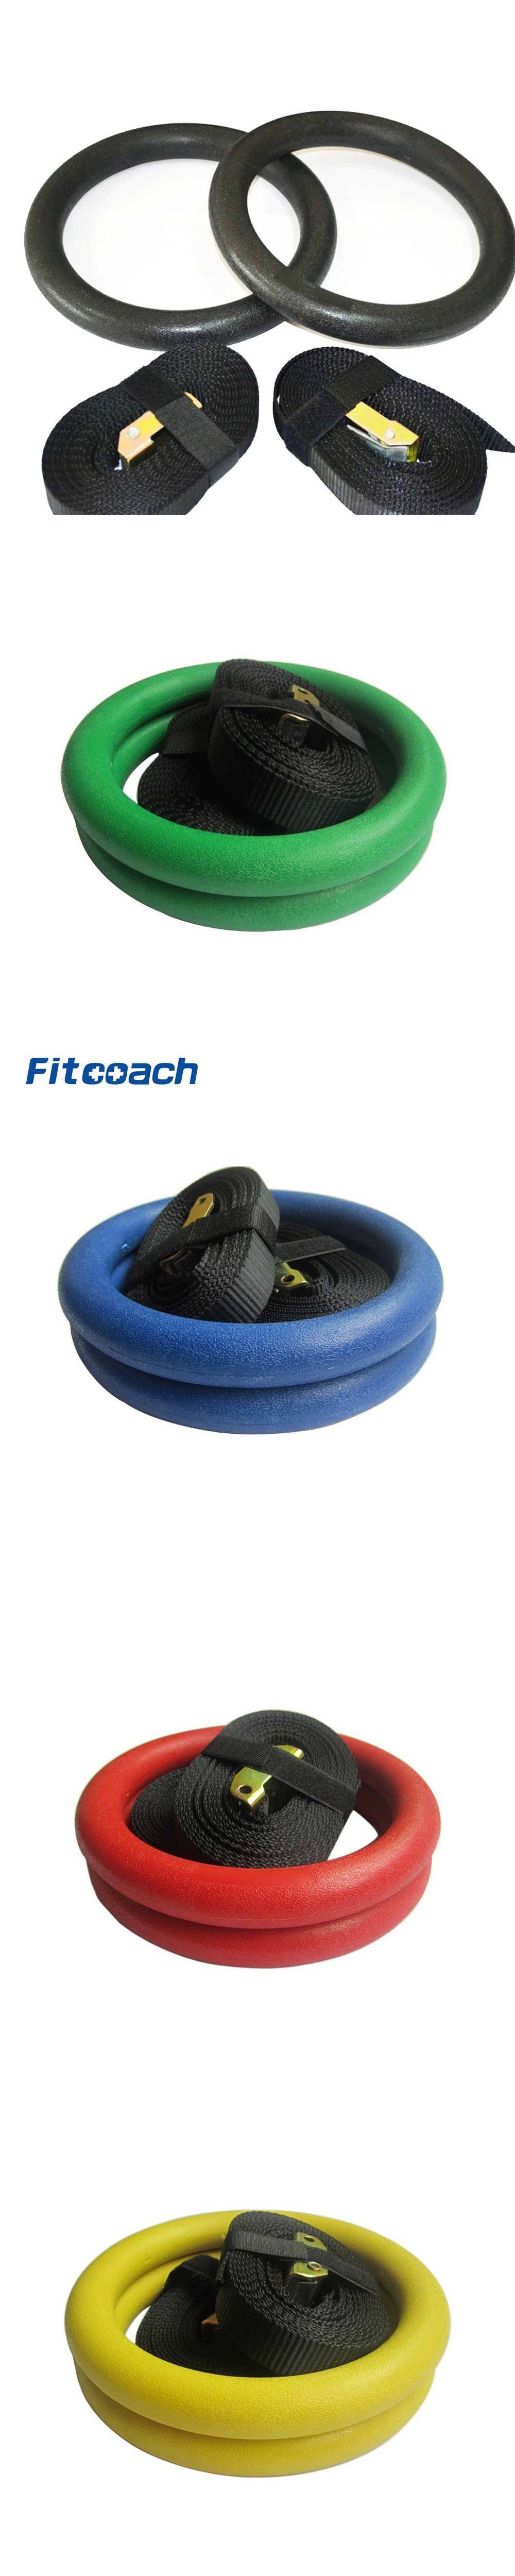 pin ultimate about more for rings functional equipment solostrength maximum exercise movement stretching weight learn and versatility training strength body